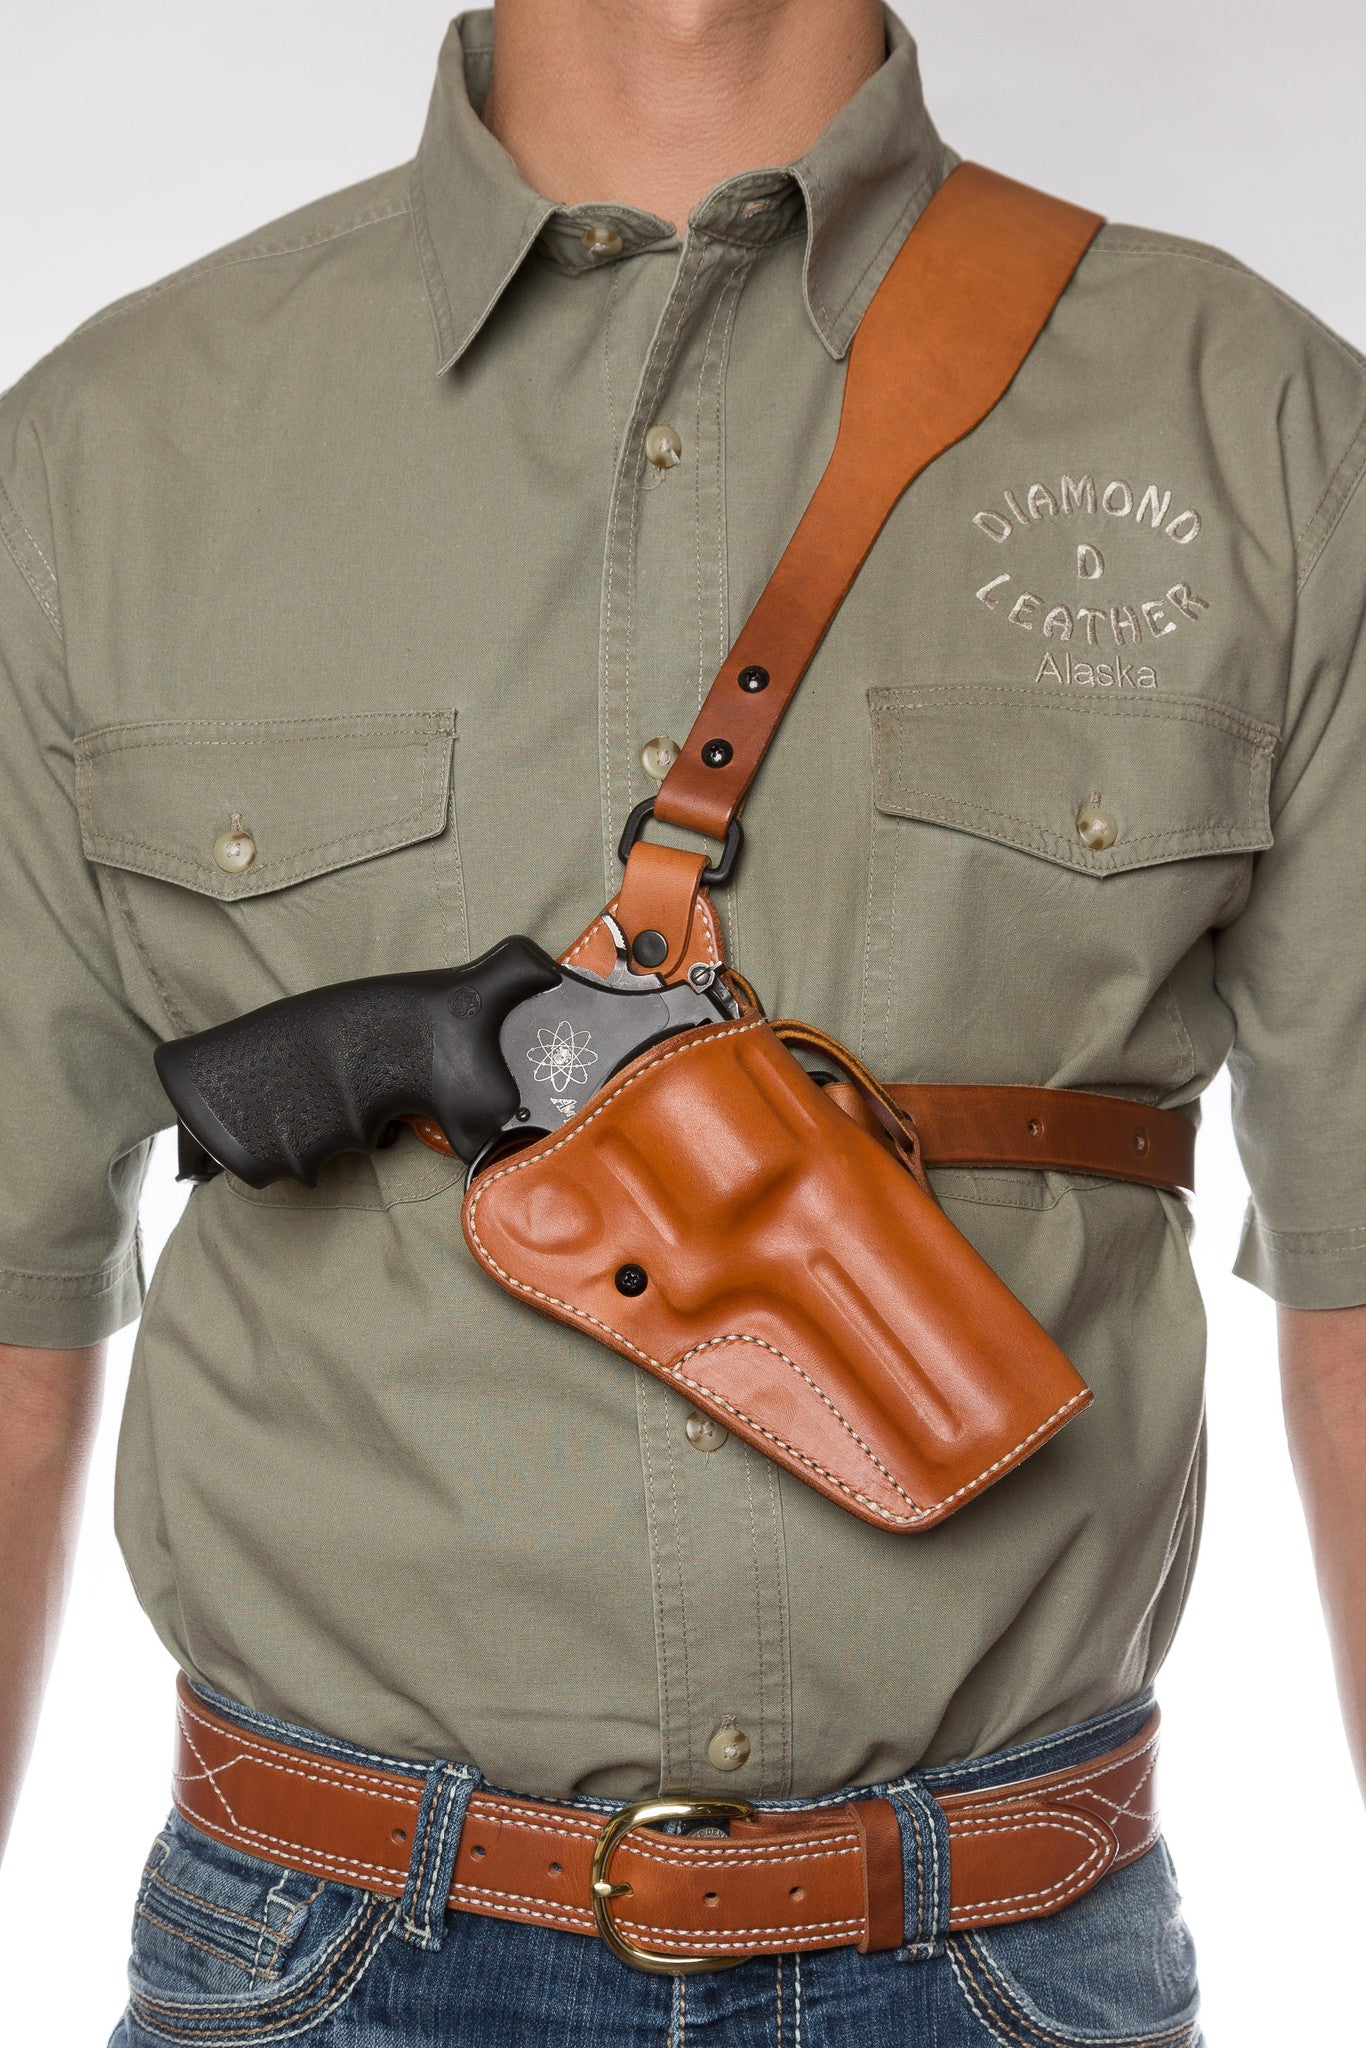 Guides Choice™ Leather Chest Holster, the ULTIMATE outdoor